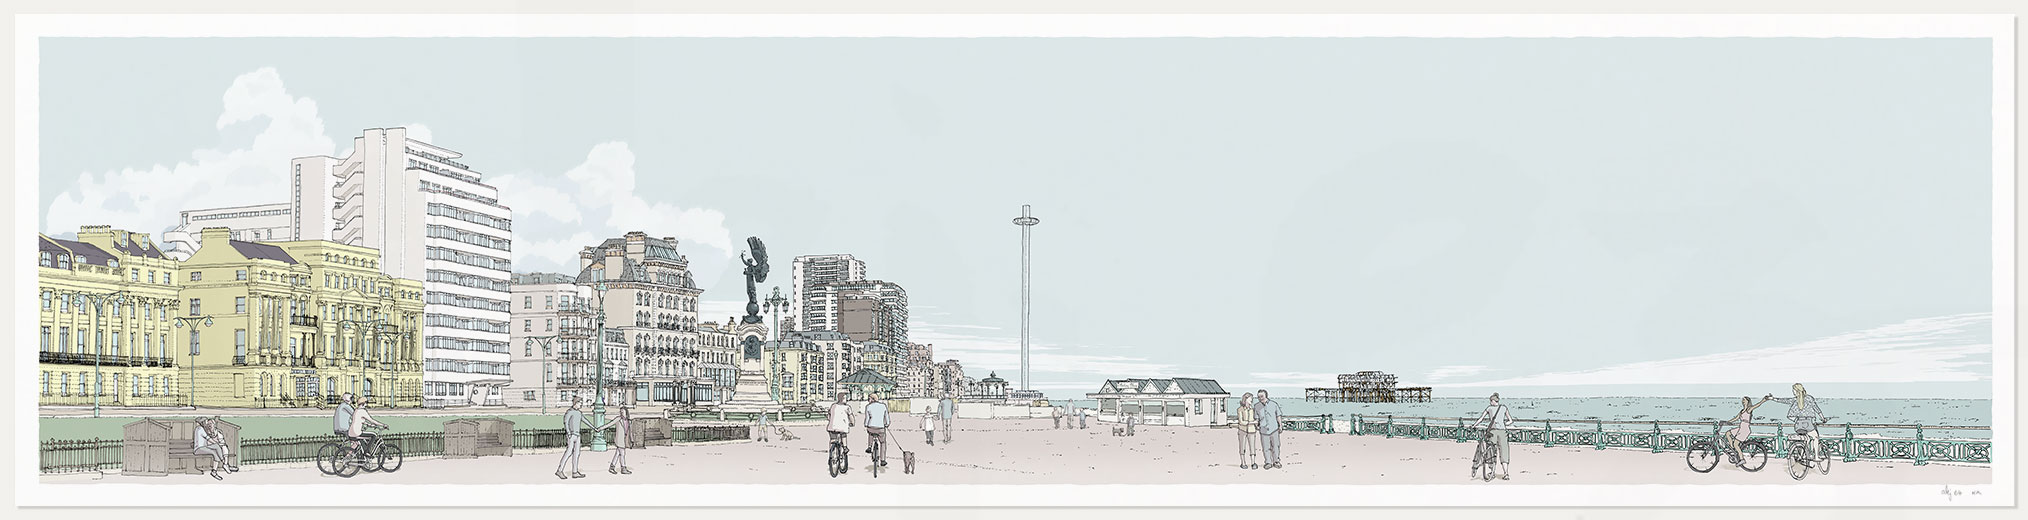 Print named Morning Walk Sea Promenade Brighton and Hove Pebble Beach by artist alej ez